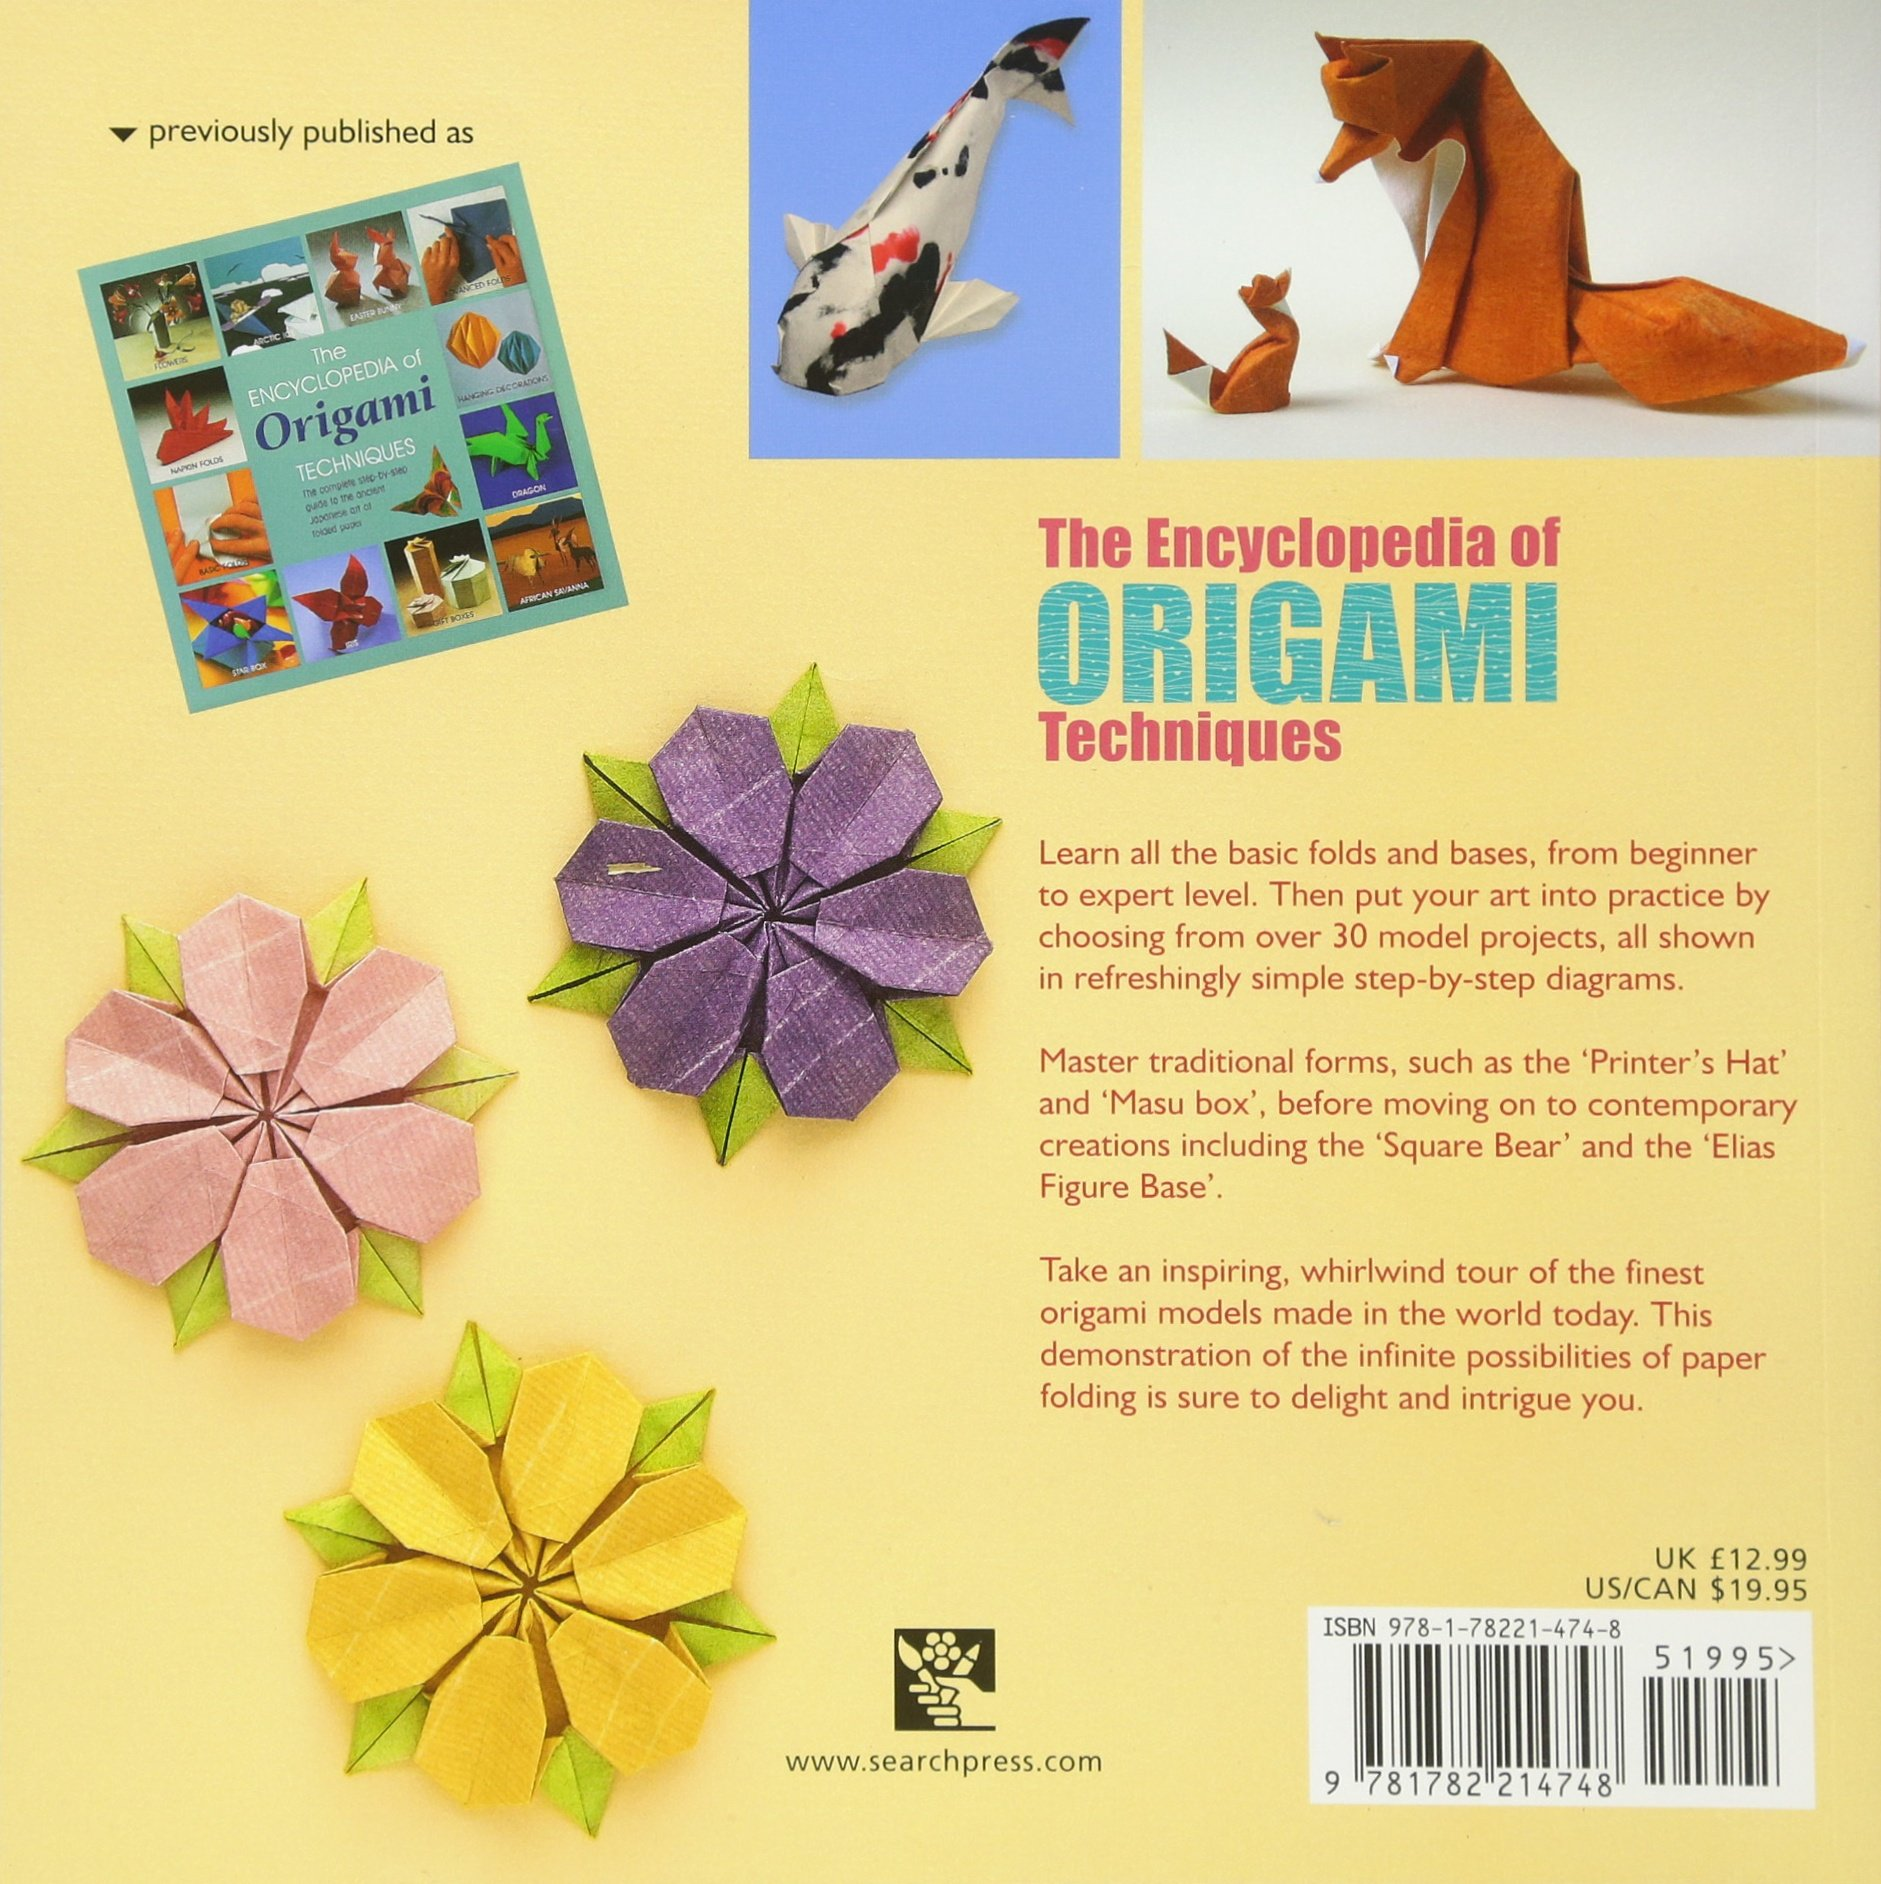 Encyclopedia Of Origami Techniques The Complete Fully Angel Diagrams Illustrated Guide To Folded Paper Arts Search Press Classics Nick Robinson